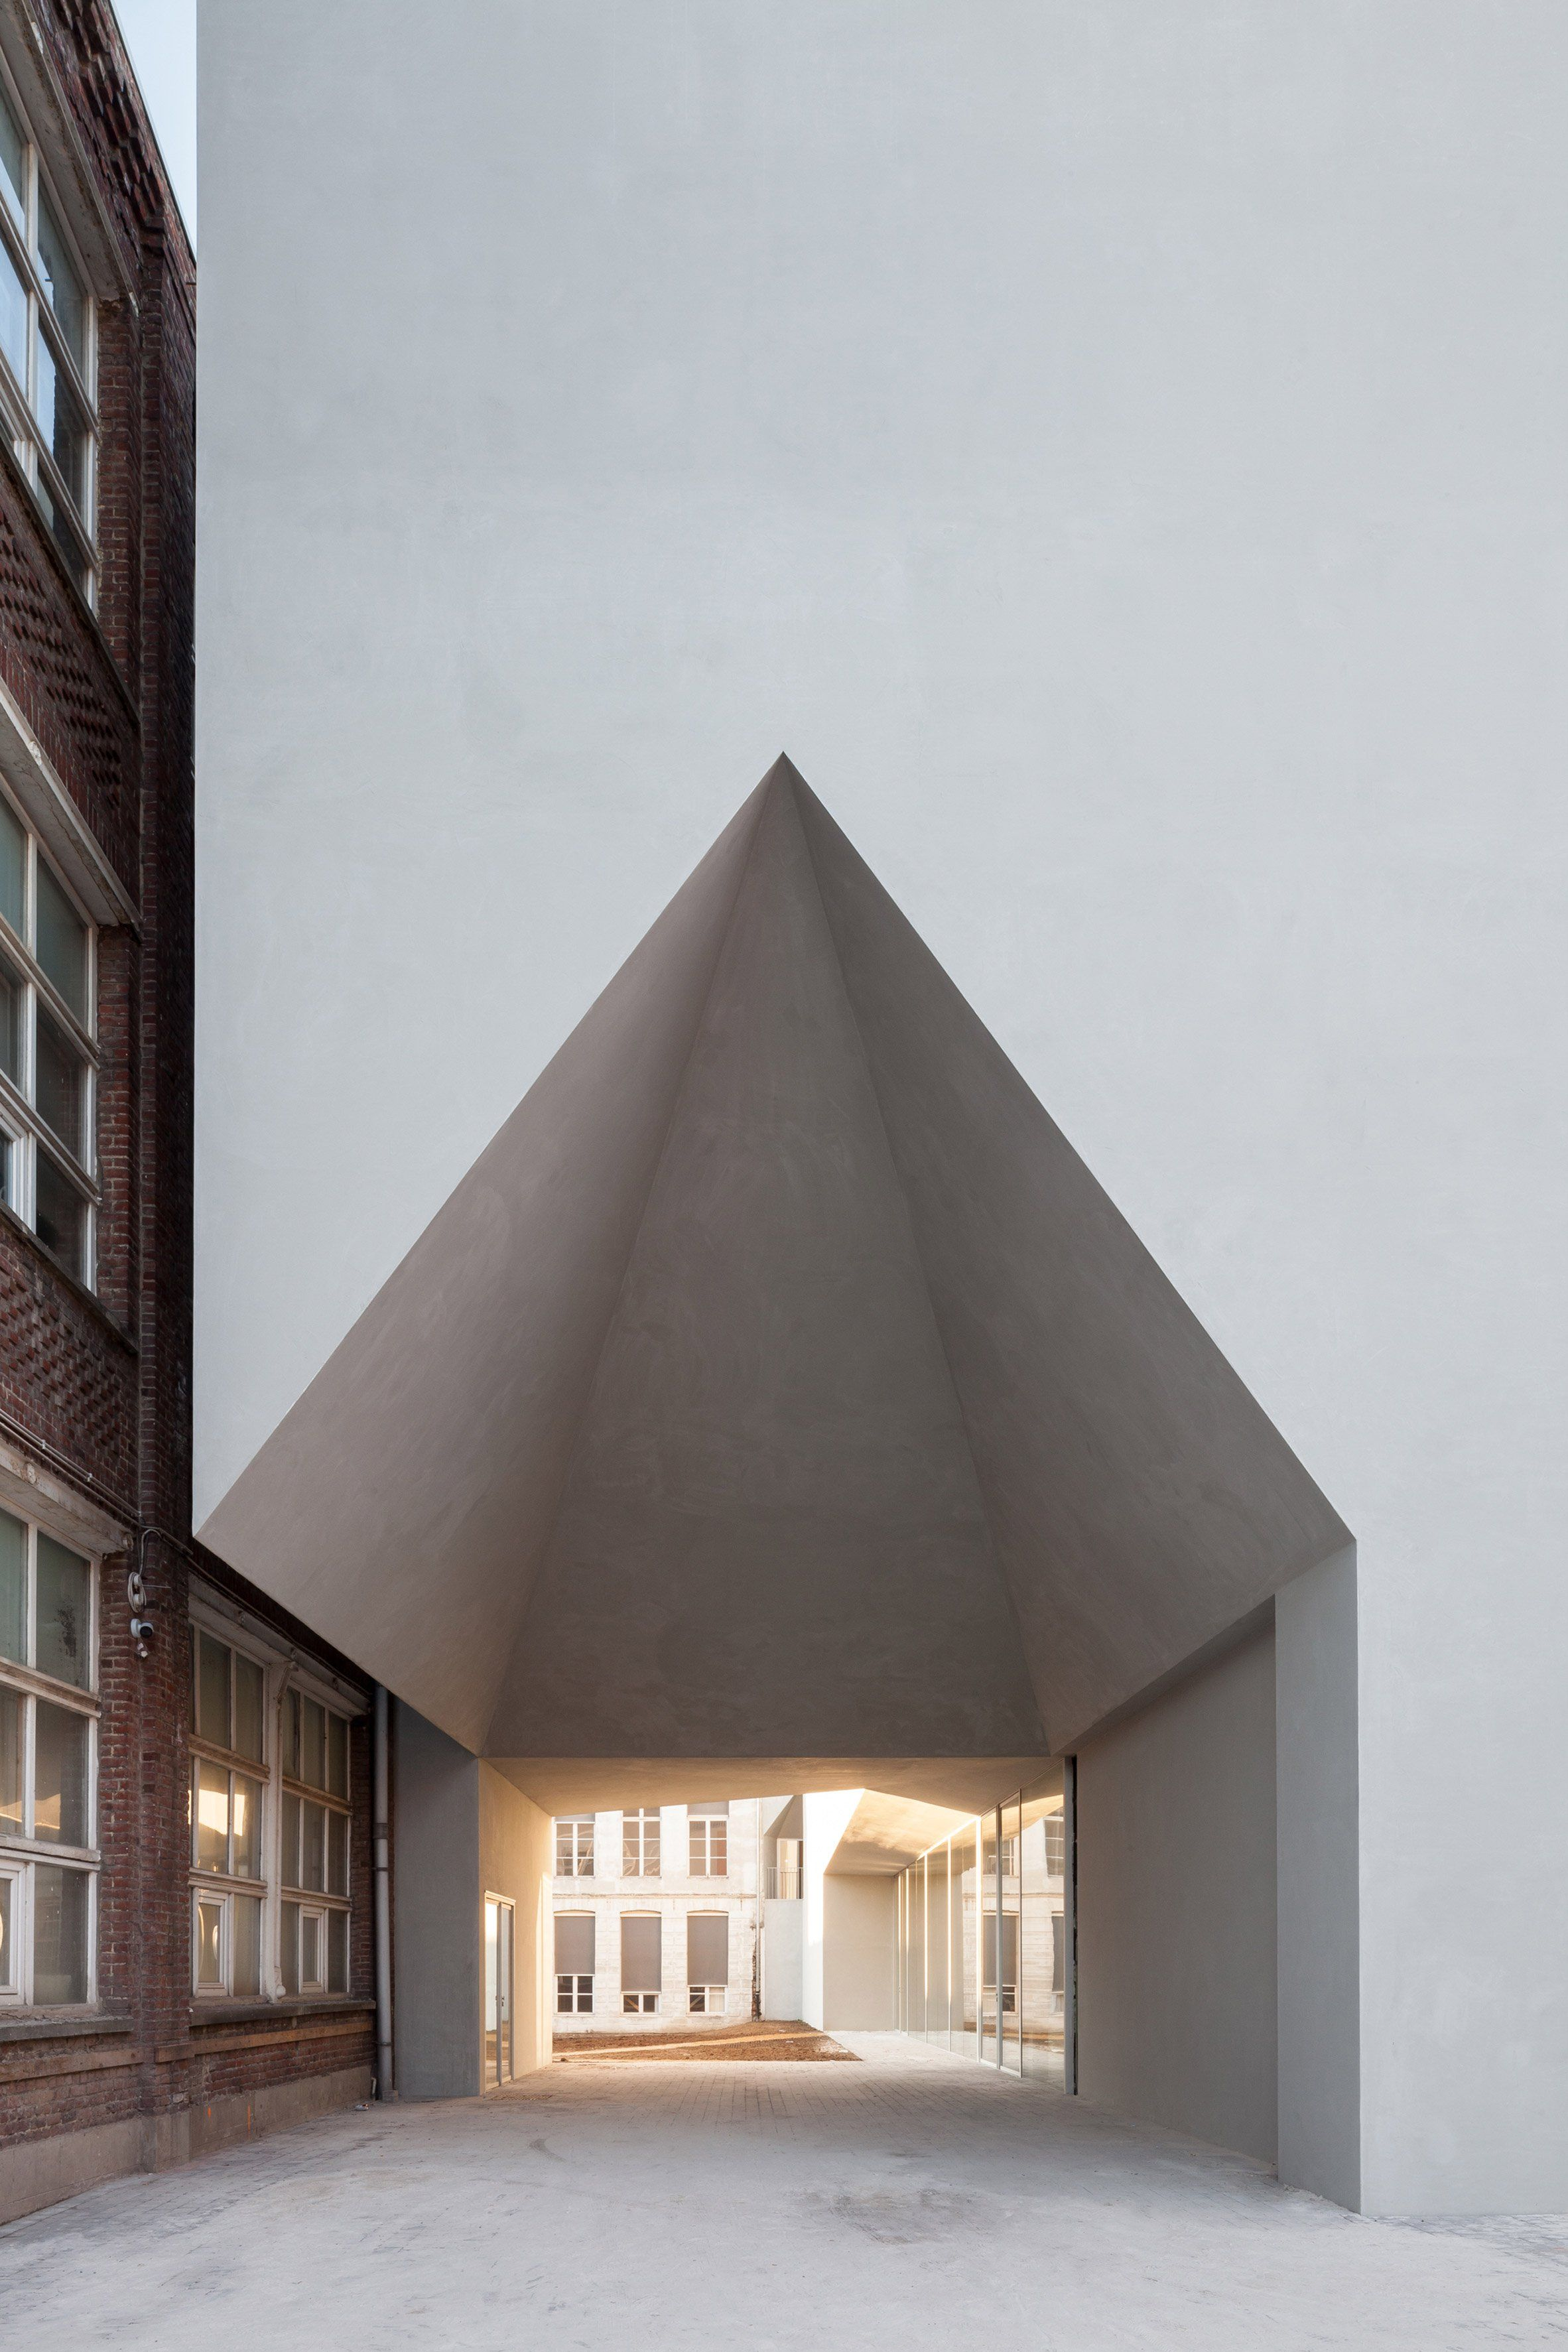 Captivating House Shaped Void Cuts Through School Of Architecture By Aires Mateus